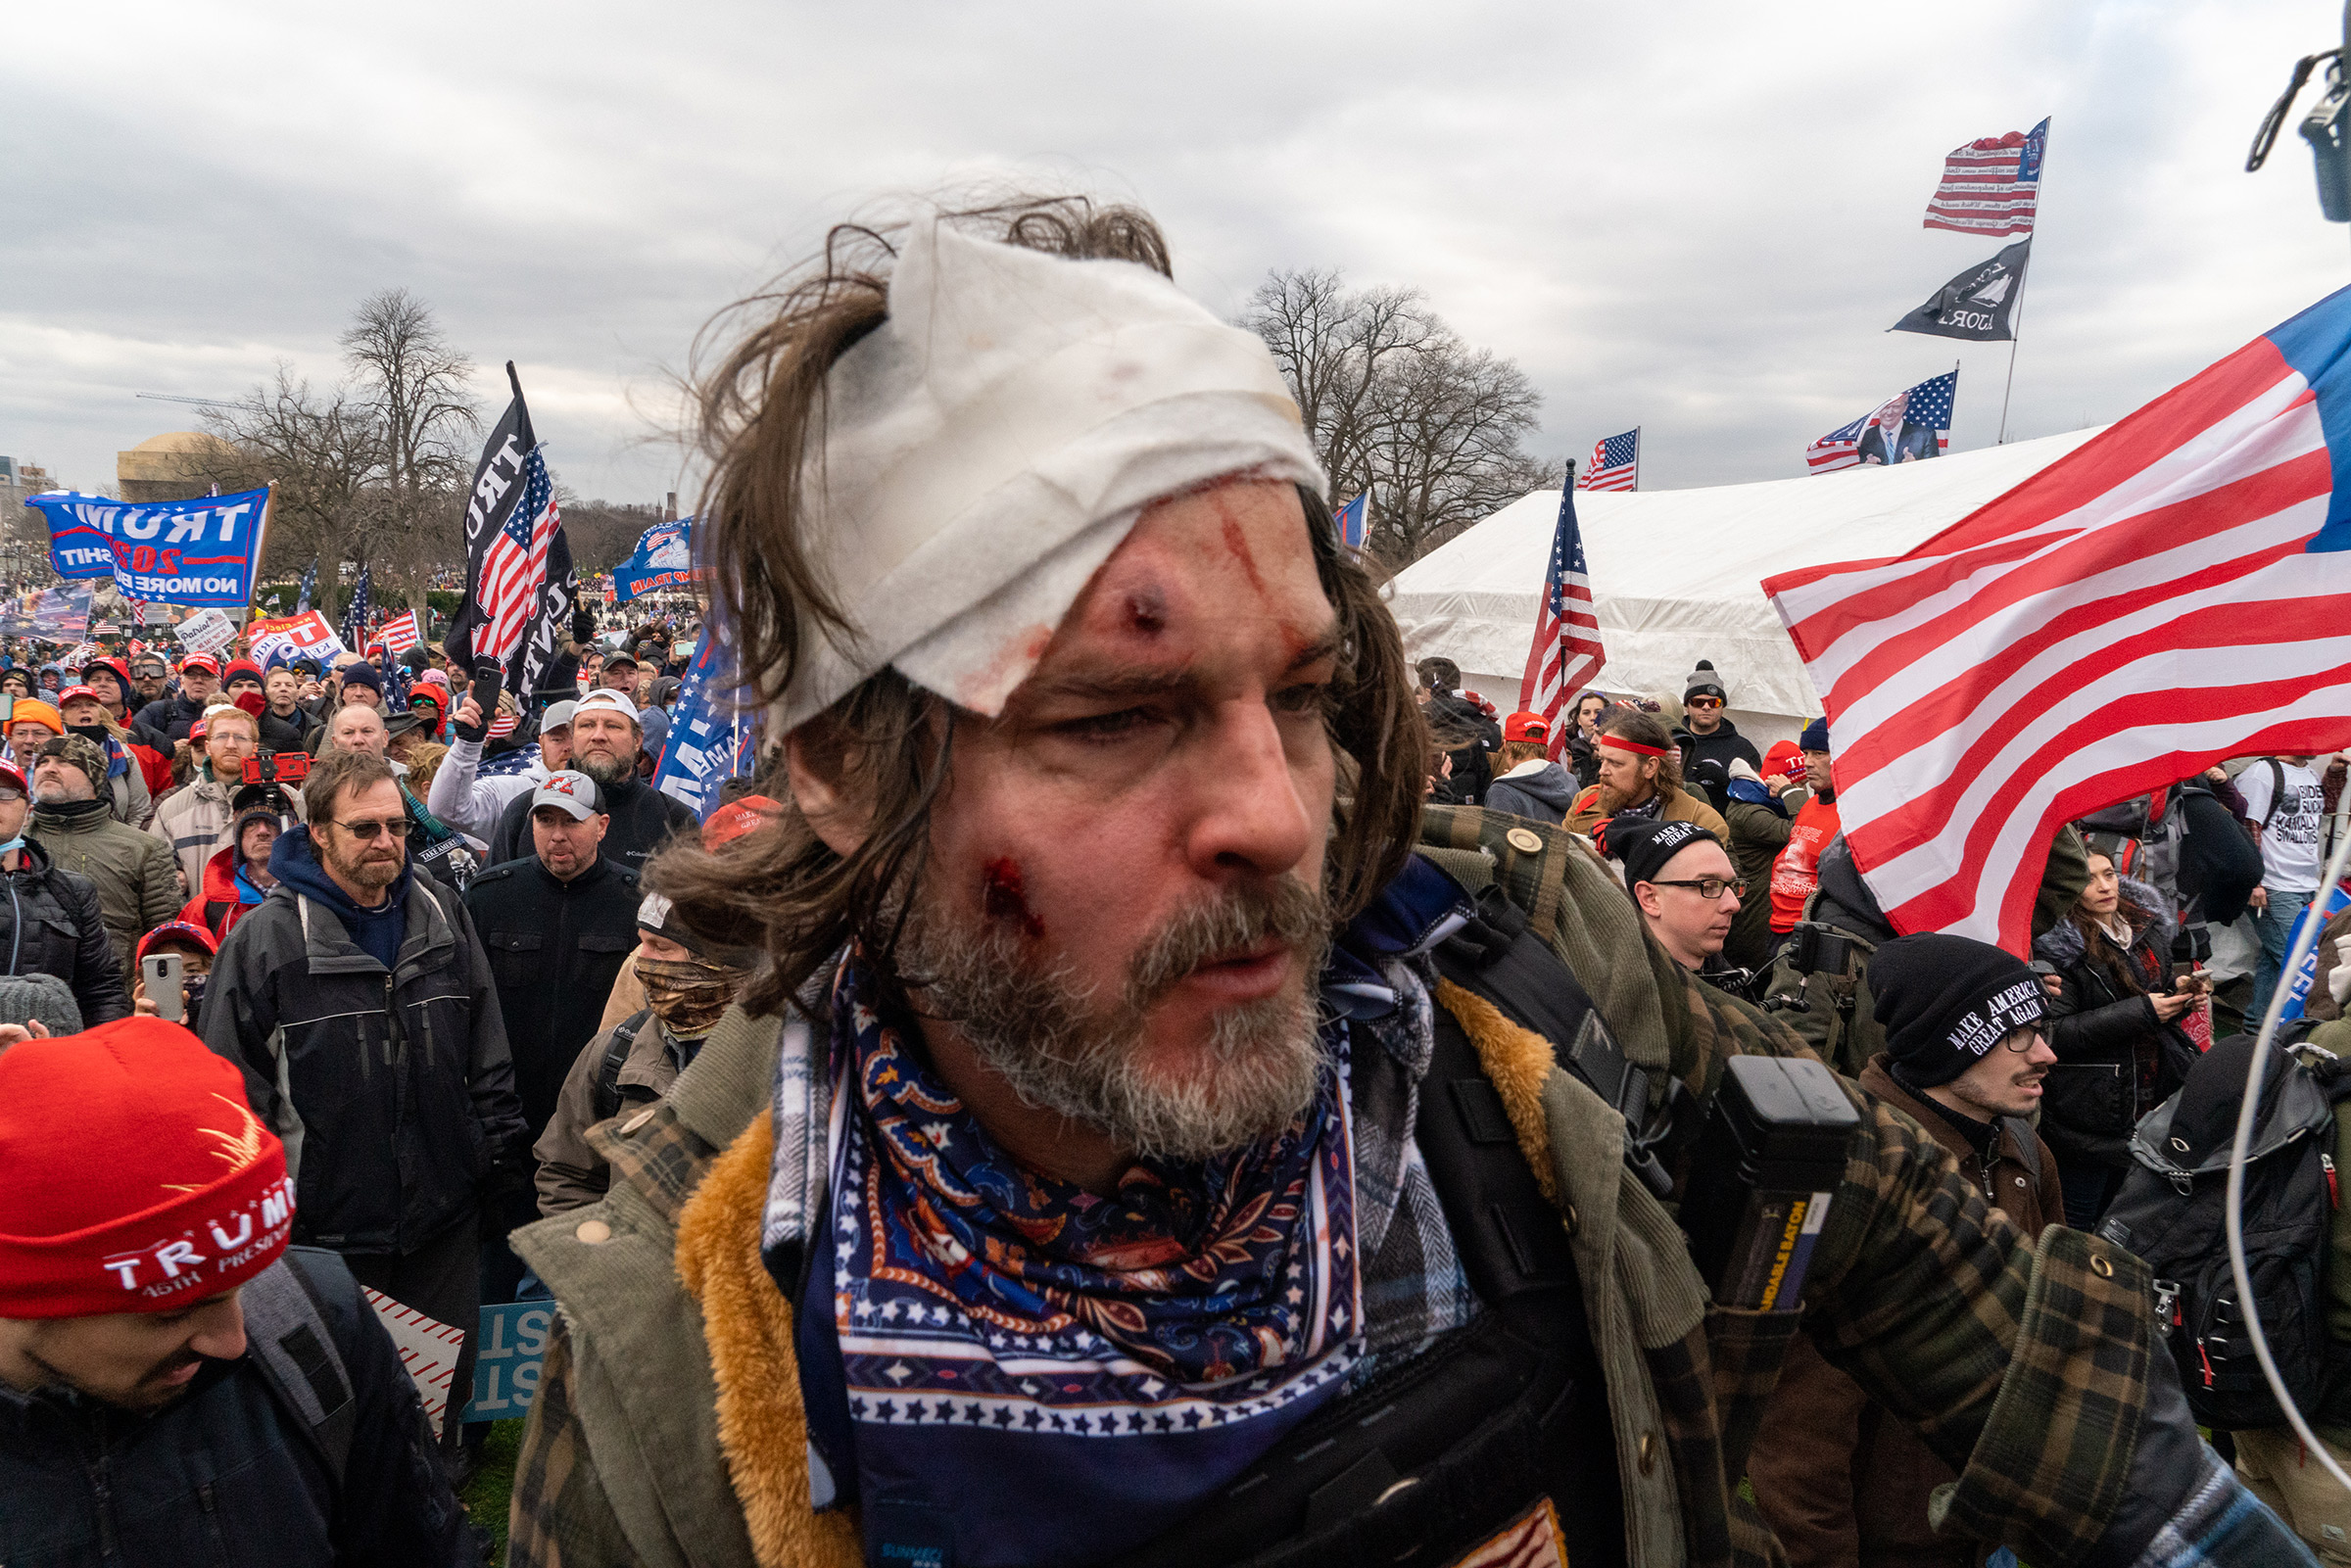 An injured pro-Trump supporters outside the Capitol building after clashes with police and security forces in Washington D.C., on Jan. 6.